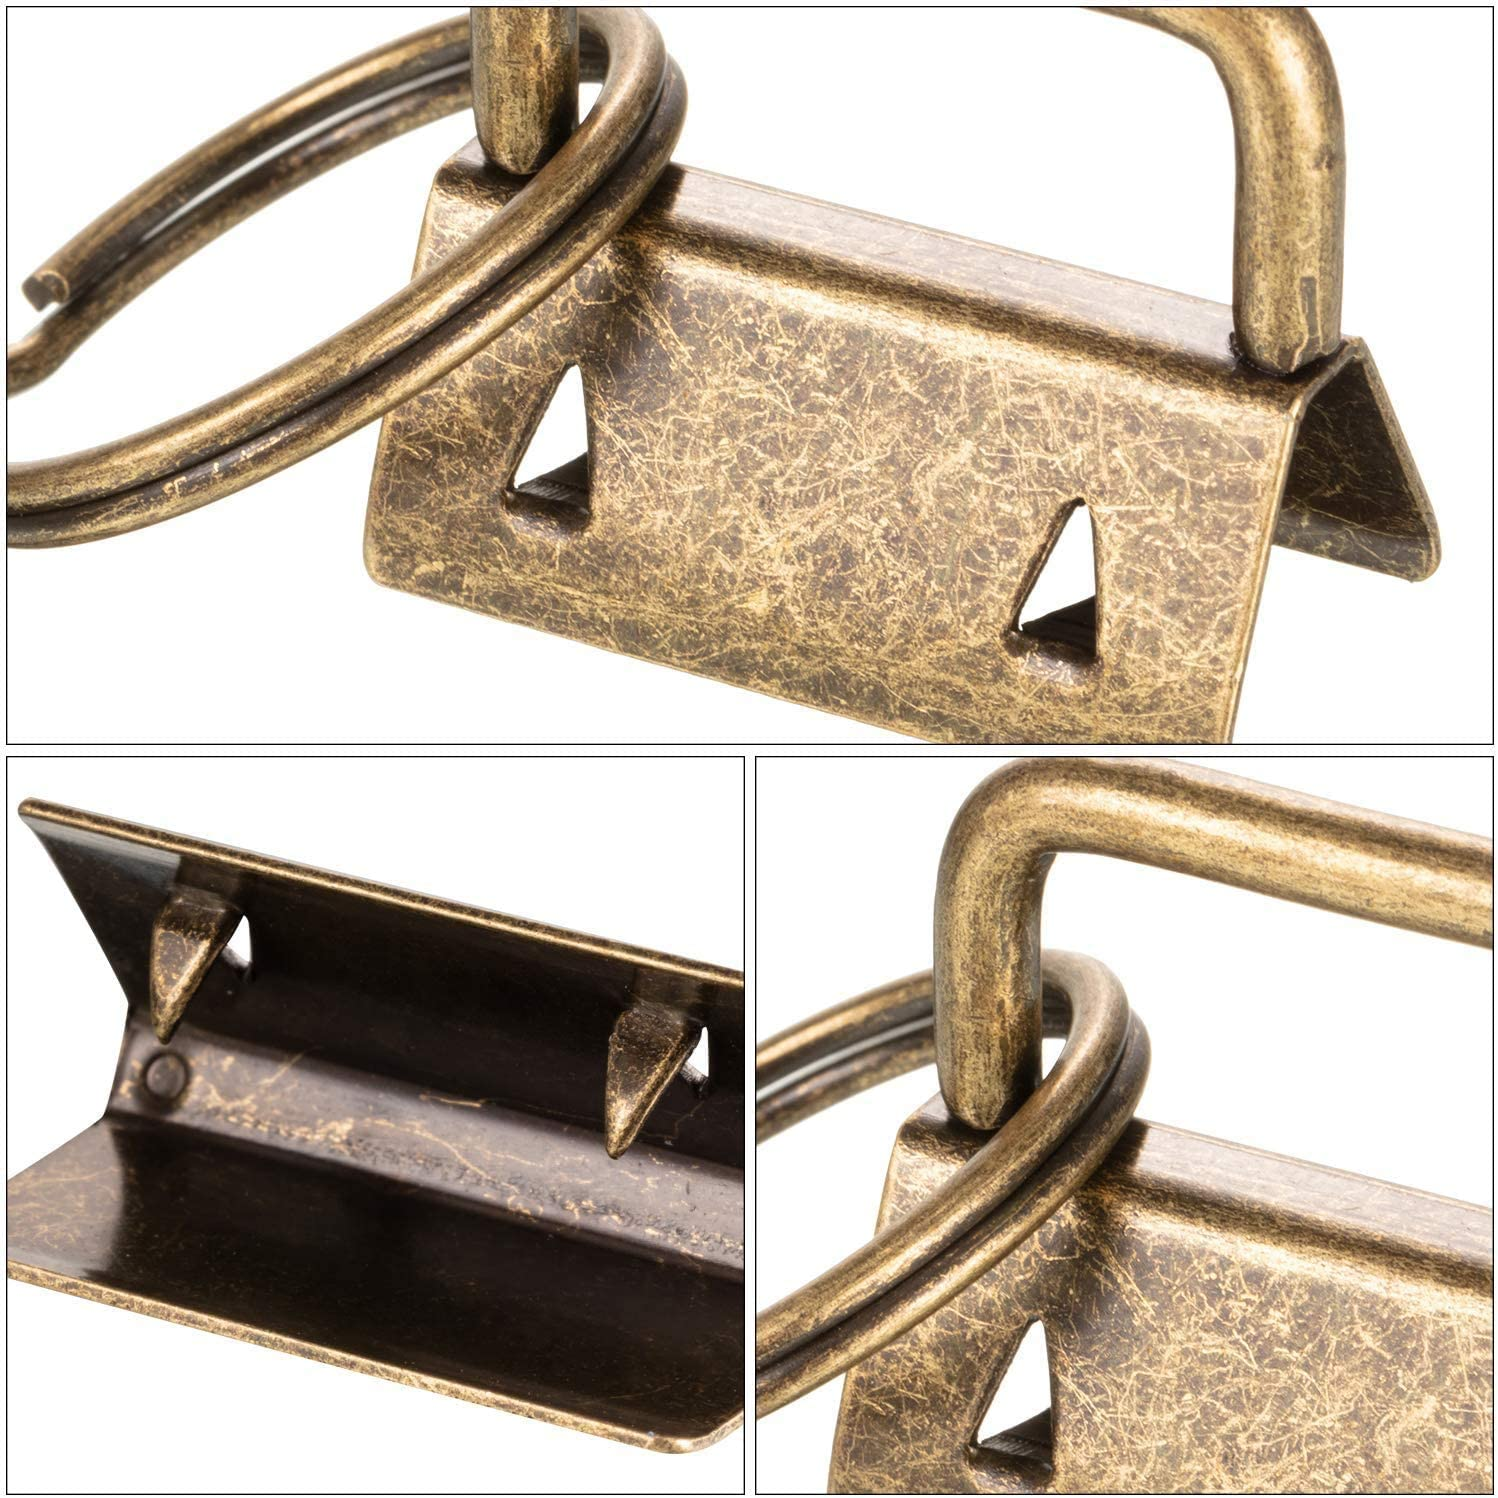 50Pcs 1 Inch Key Fob Hardware Bronze Key Chain Fob Wristlet Hardware with Key Ring for Lanyard